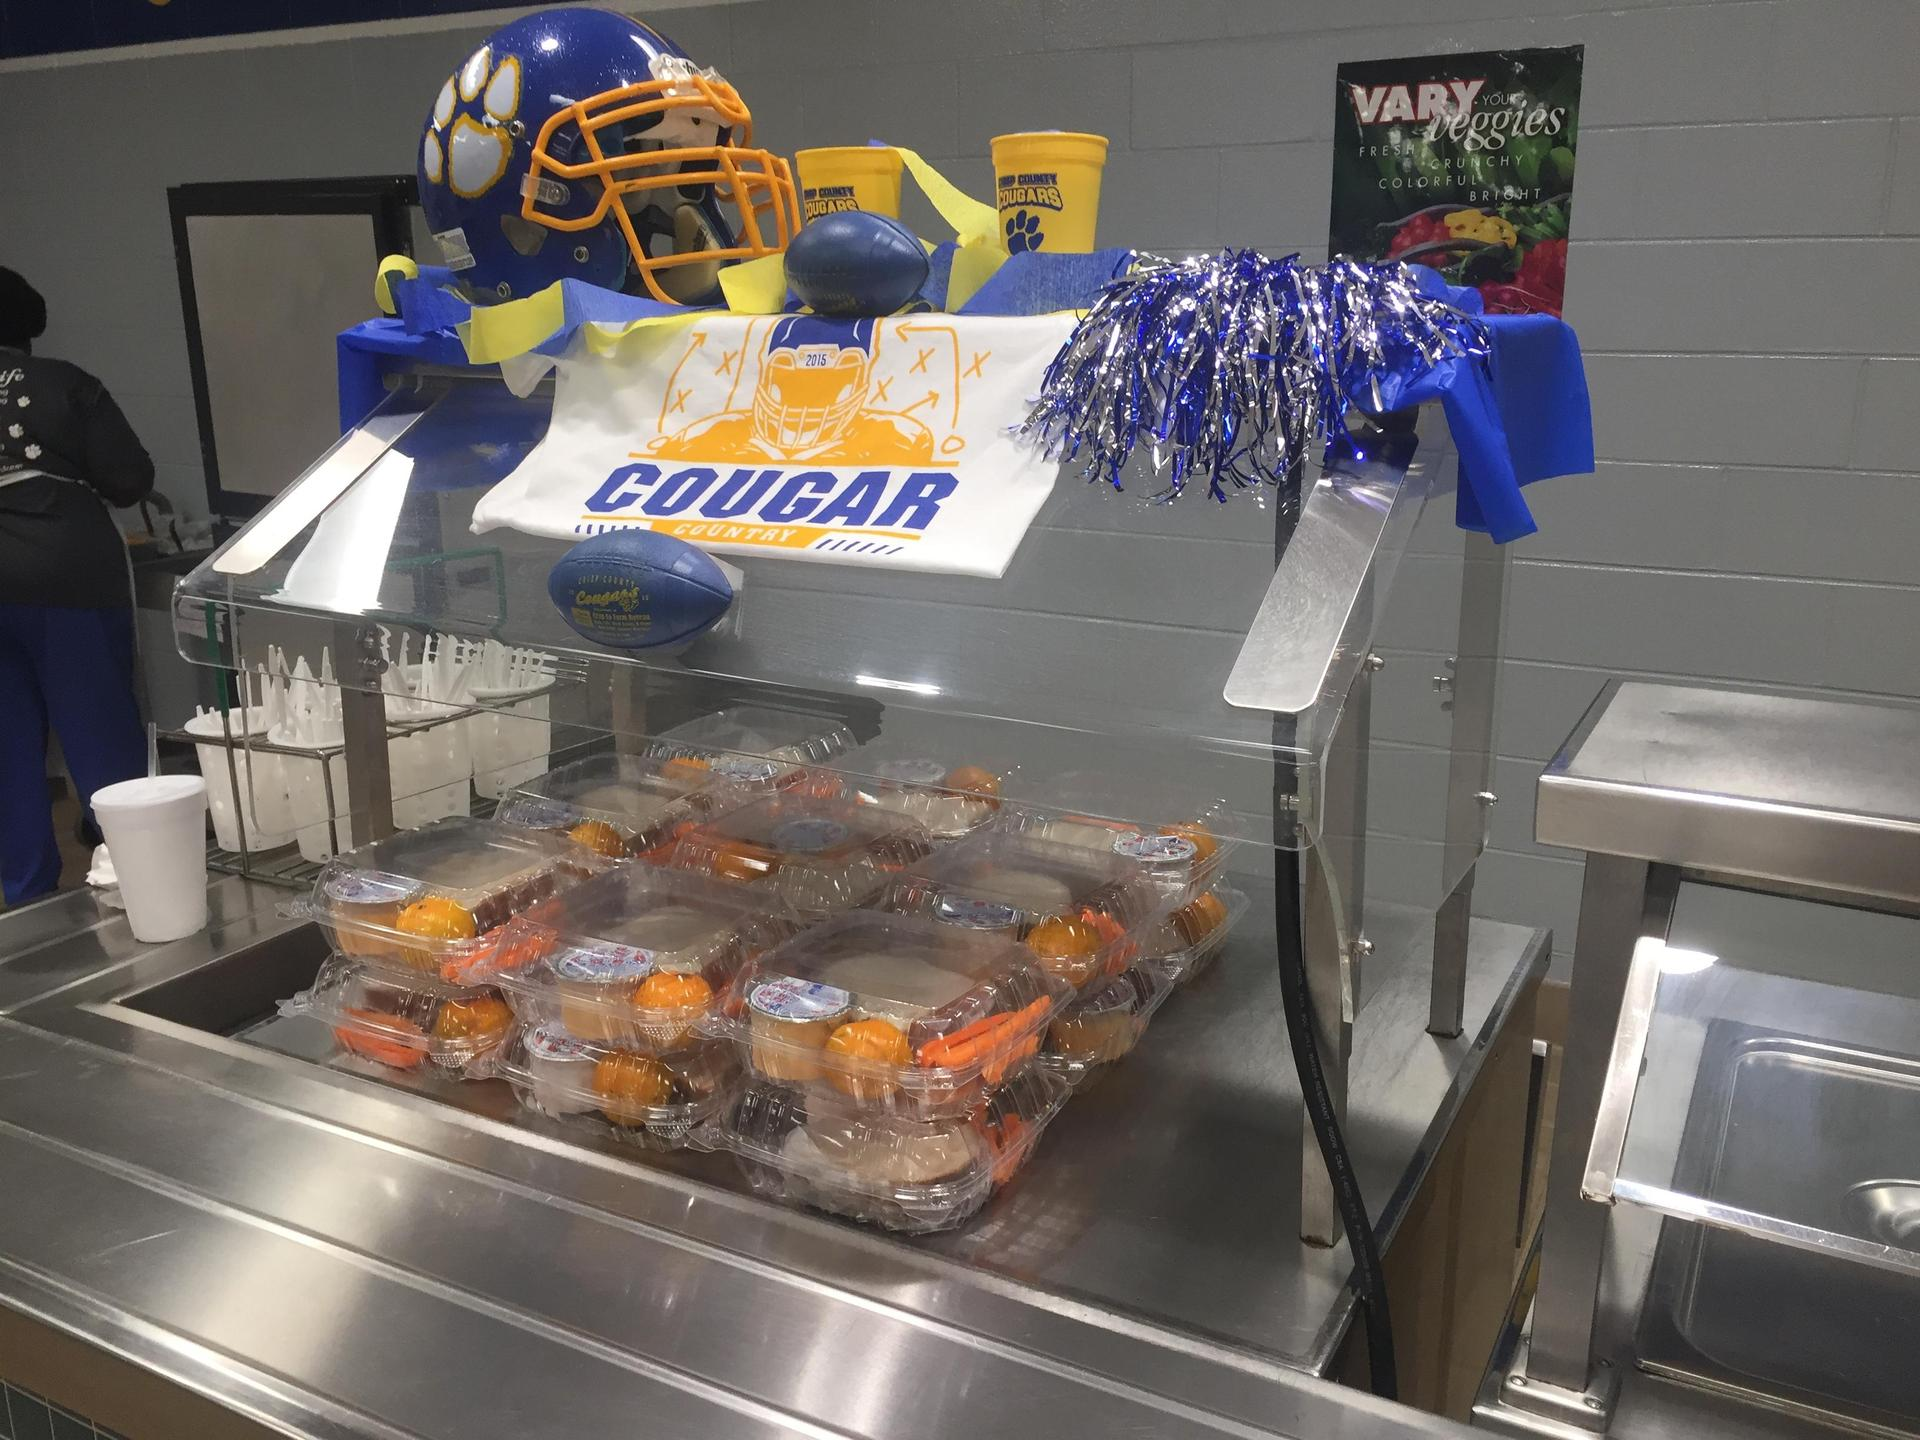 High School offers some grab n go options for students who are duel enrollment